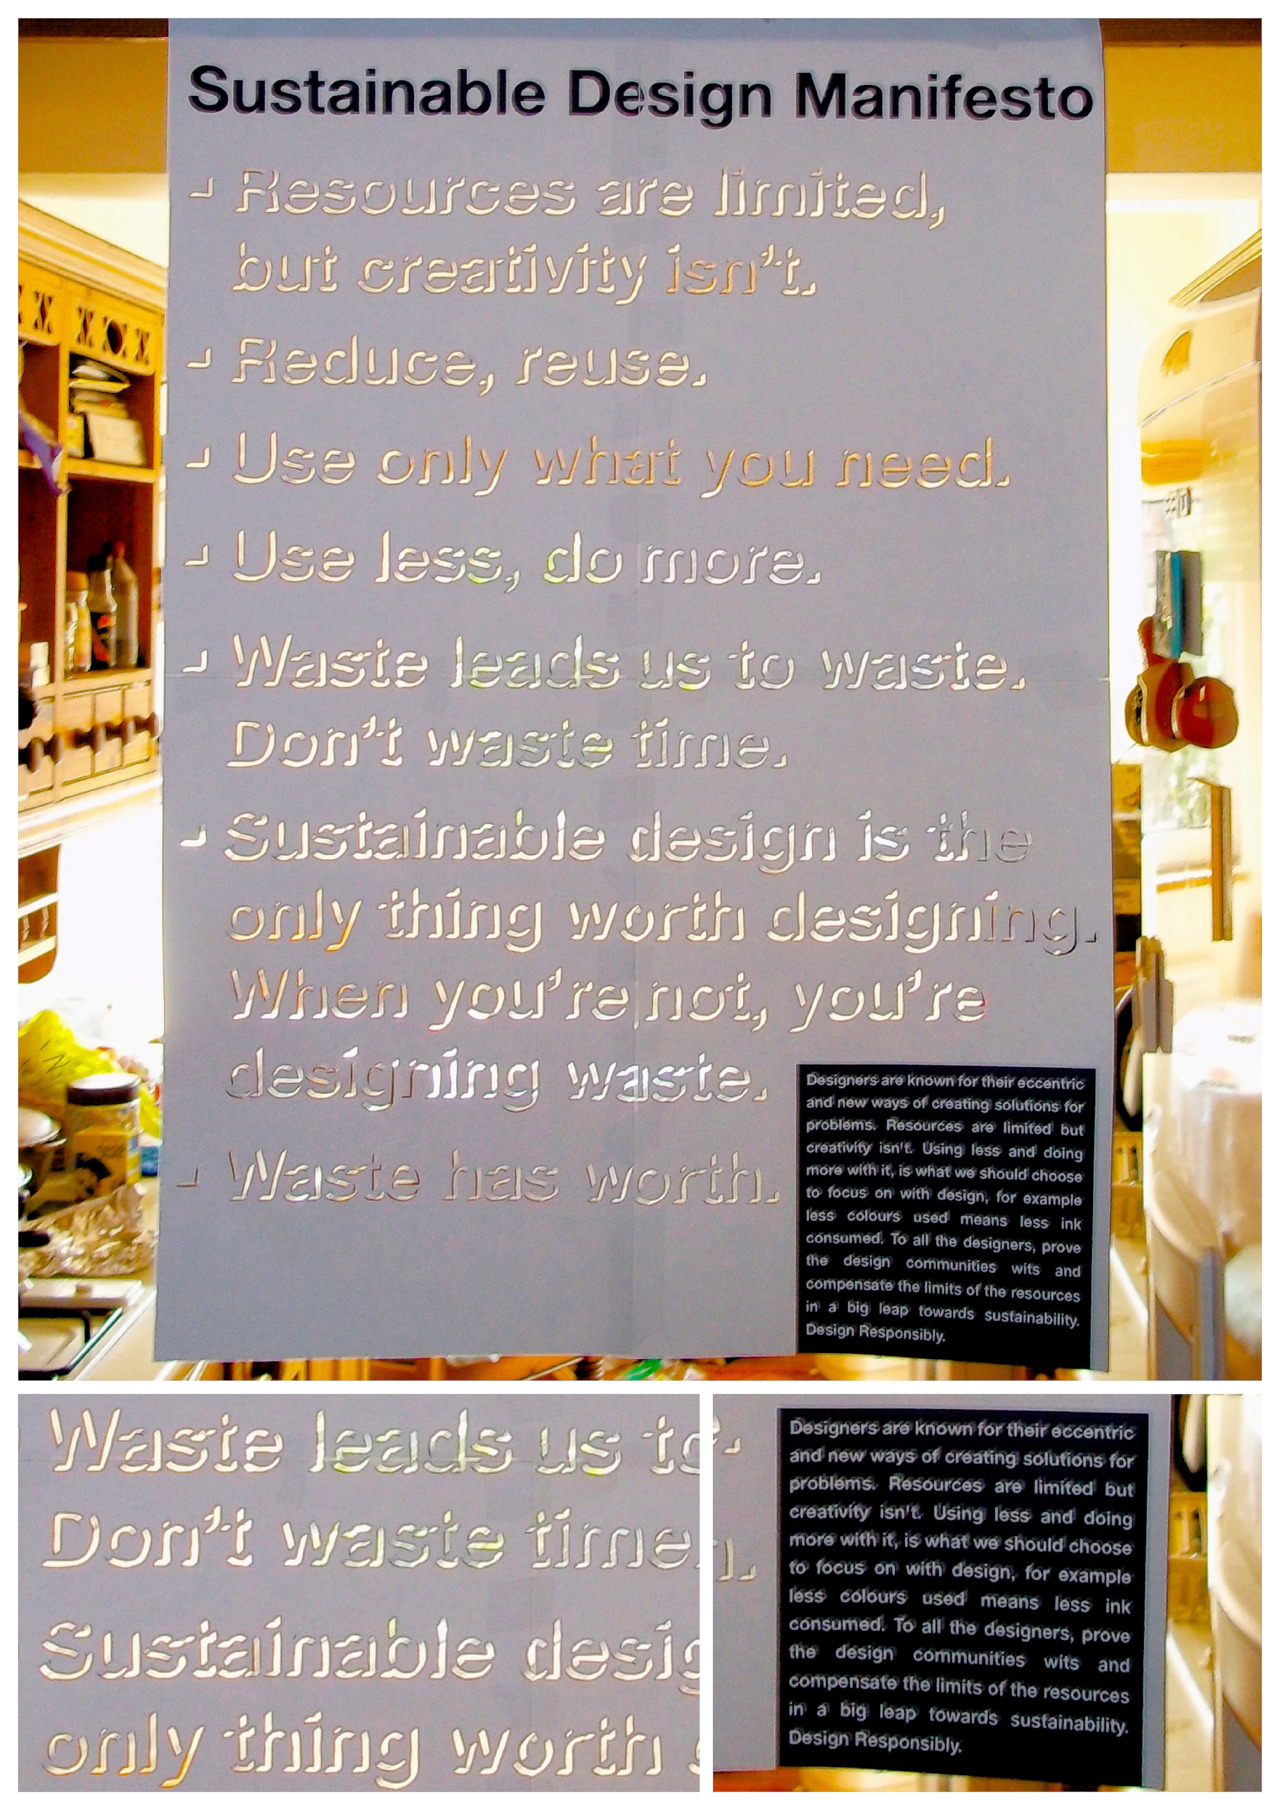 Sustainable Design Manifesto (Mockup) Designers are known for their eccentric and new ways of creating solutions for problems. Resources are limited but creativity isn't. Using less and doing more with it, is what we should chose to focus on with design, for example Less colours used means less ink consumed. To all the designers, prove the design community's wits and compensate the limits of the resources in a big leap towards sustainability. Design Responsibly.